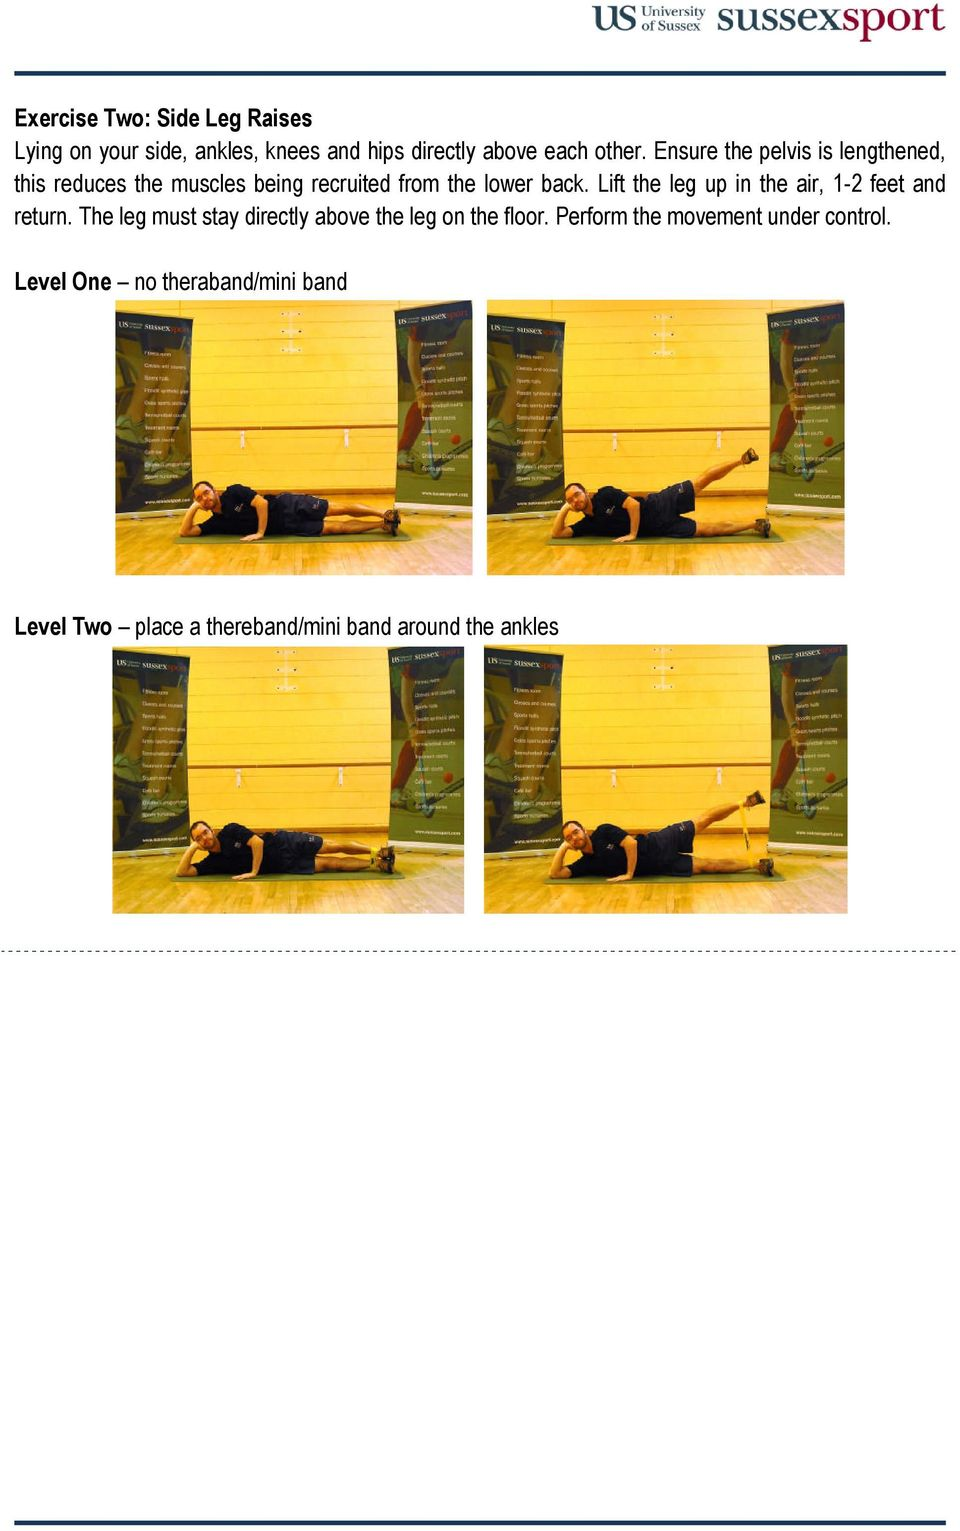 Lift the leg up in the air, 1-2 feet and return. The leg must stay directly above the leg on the floor.